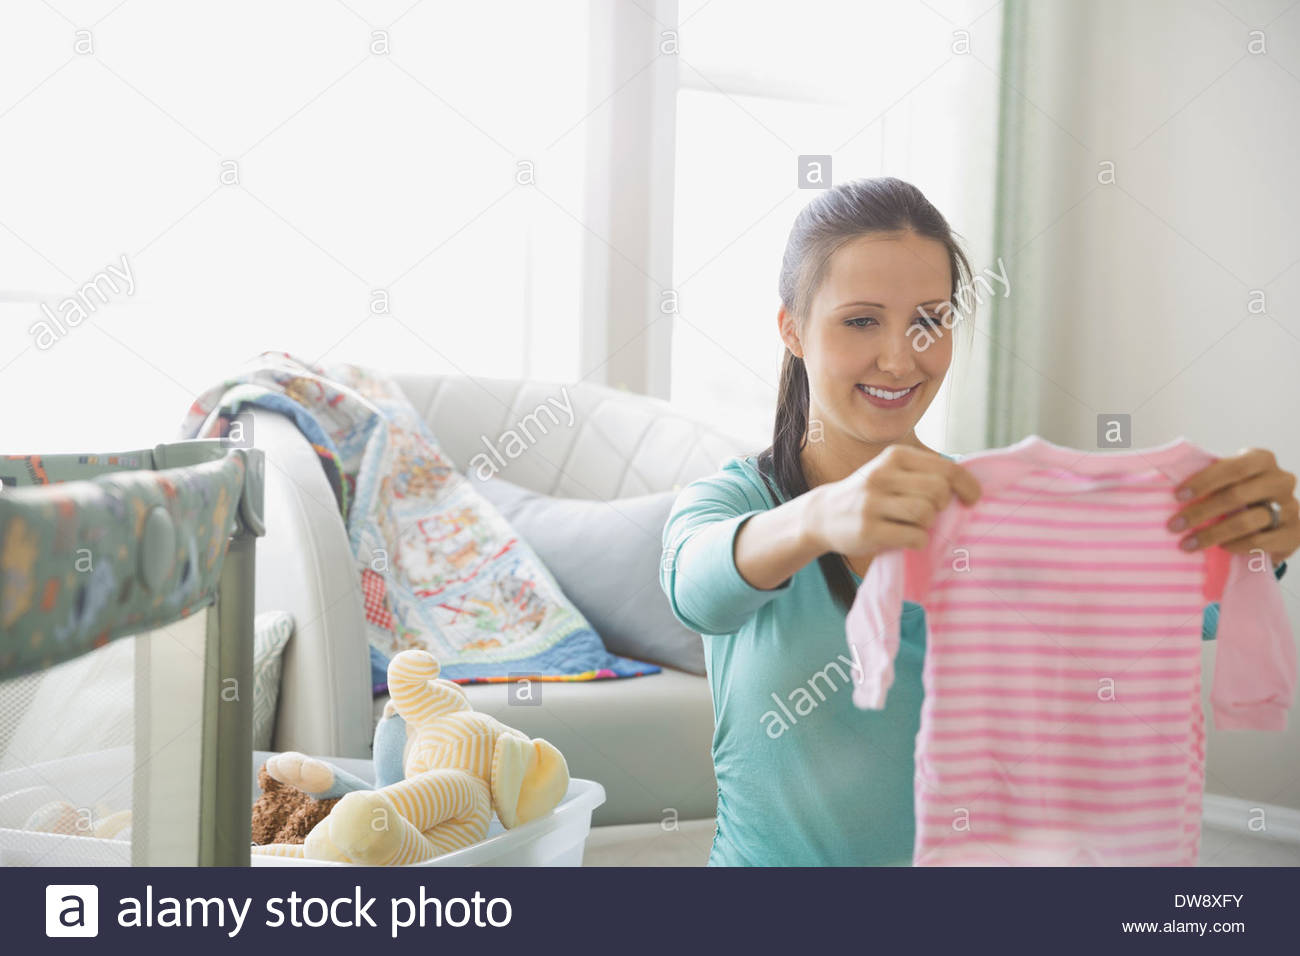 6203b0896 Pregnant woman holding baby onesie in nursery - Stock Image